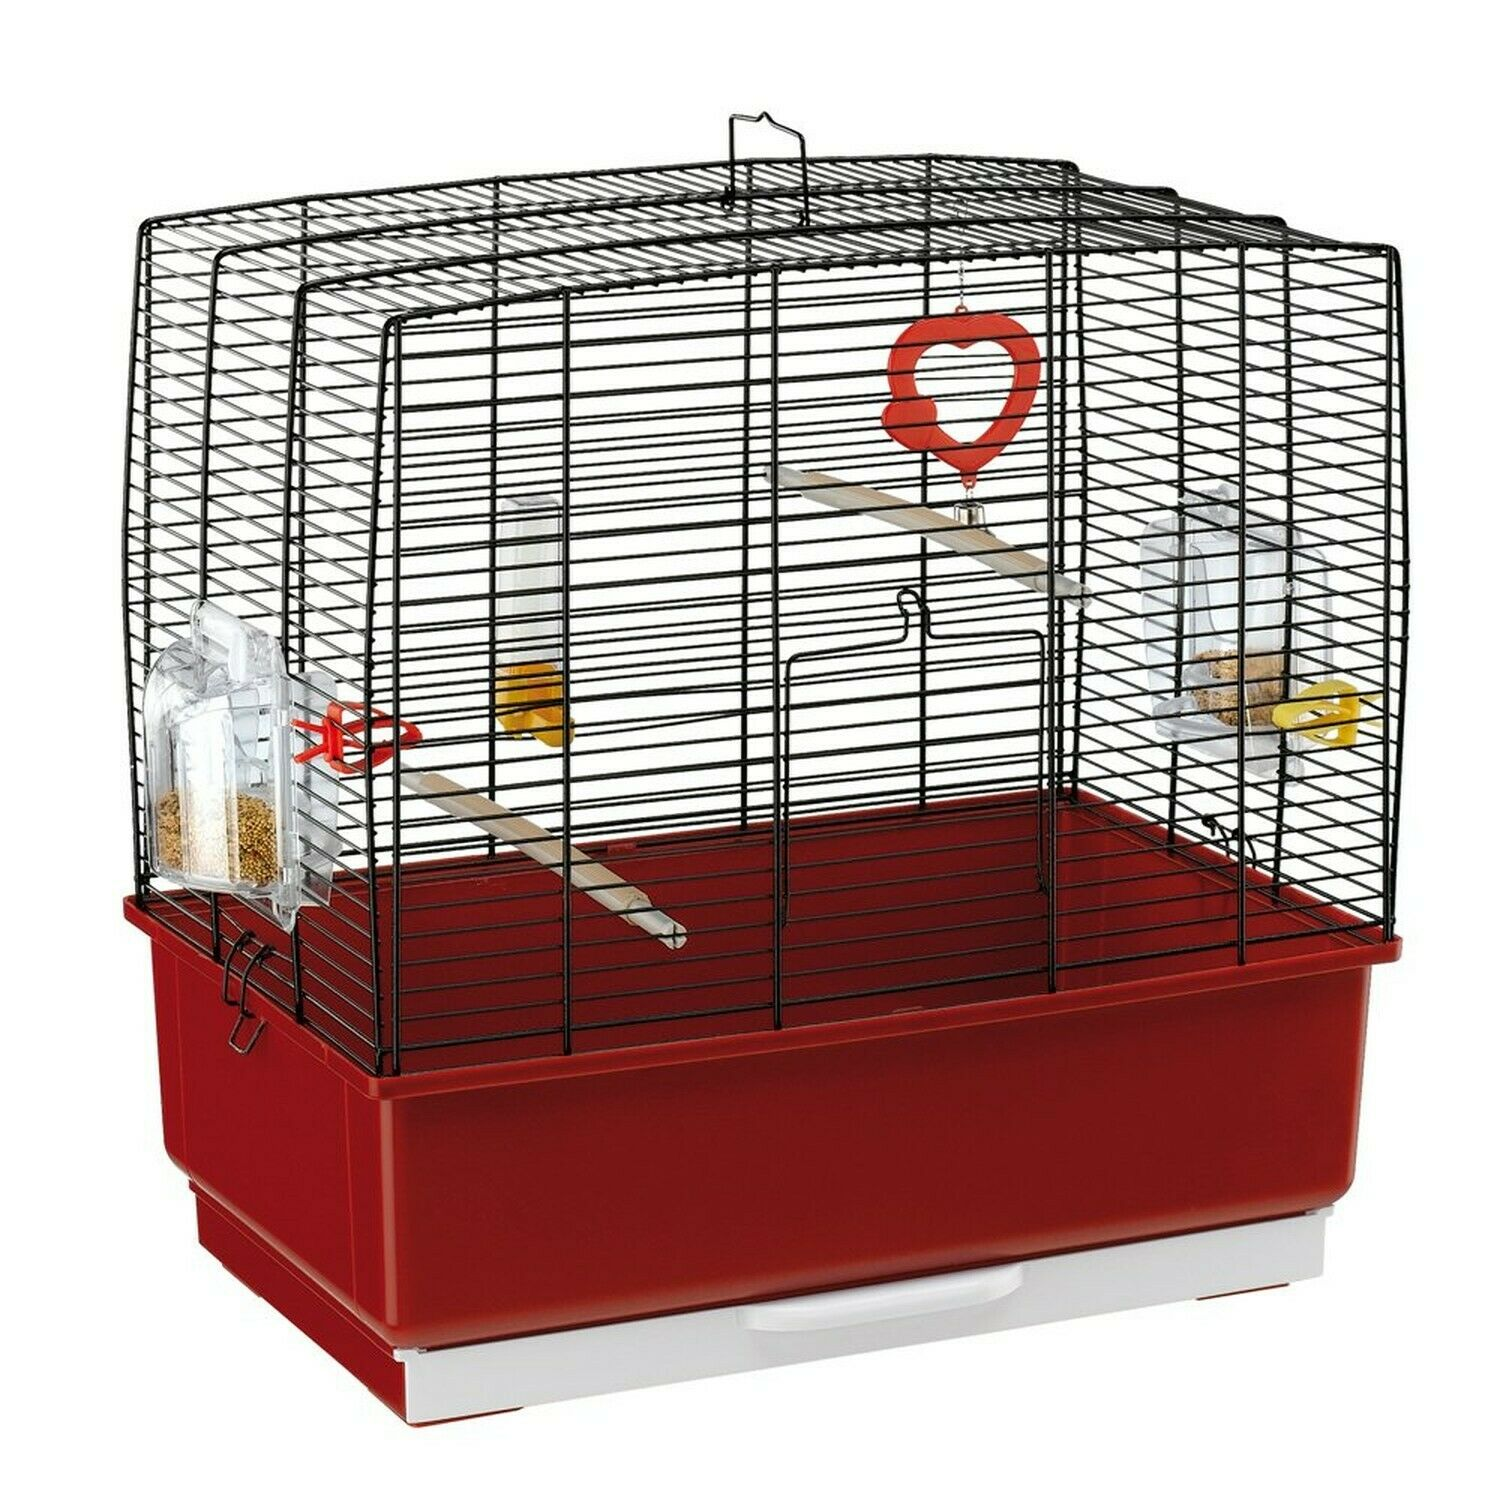 Ferplast Rekord 3 Bird Cage, 49 x 30 x 48.5 cm, Black